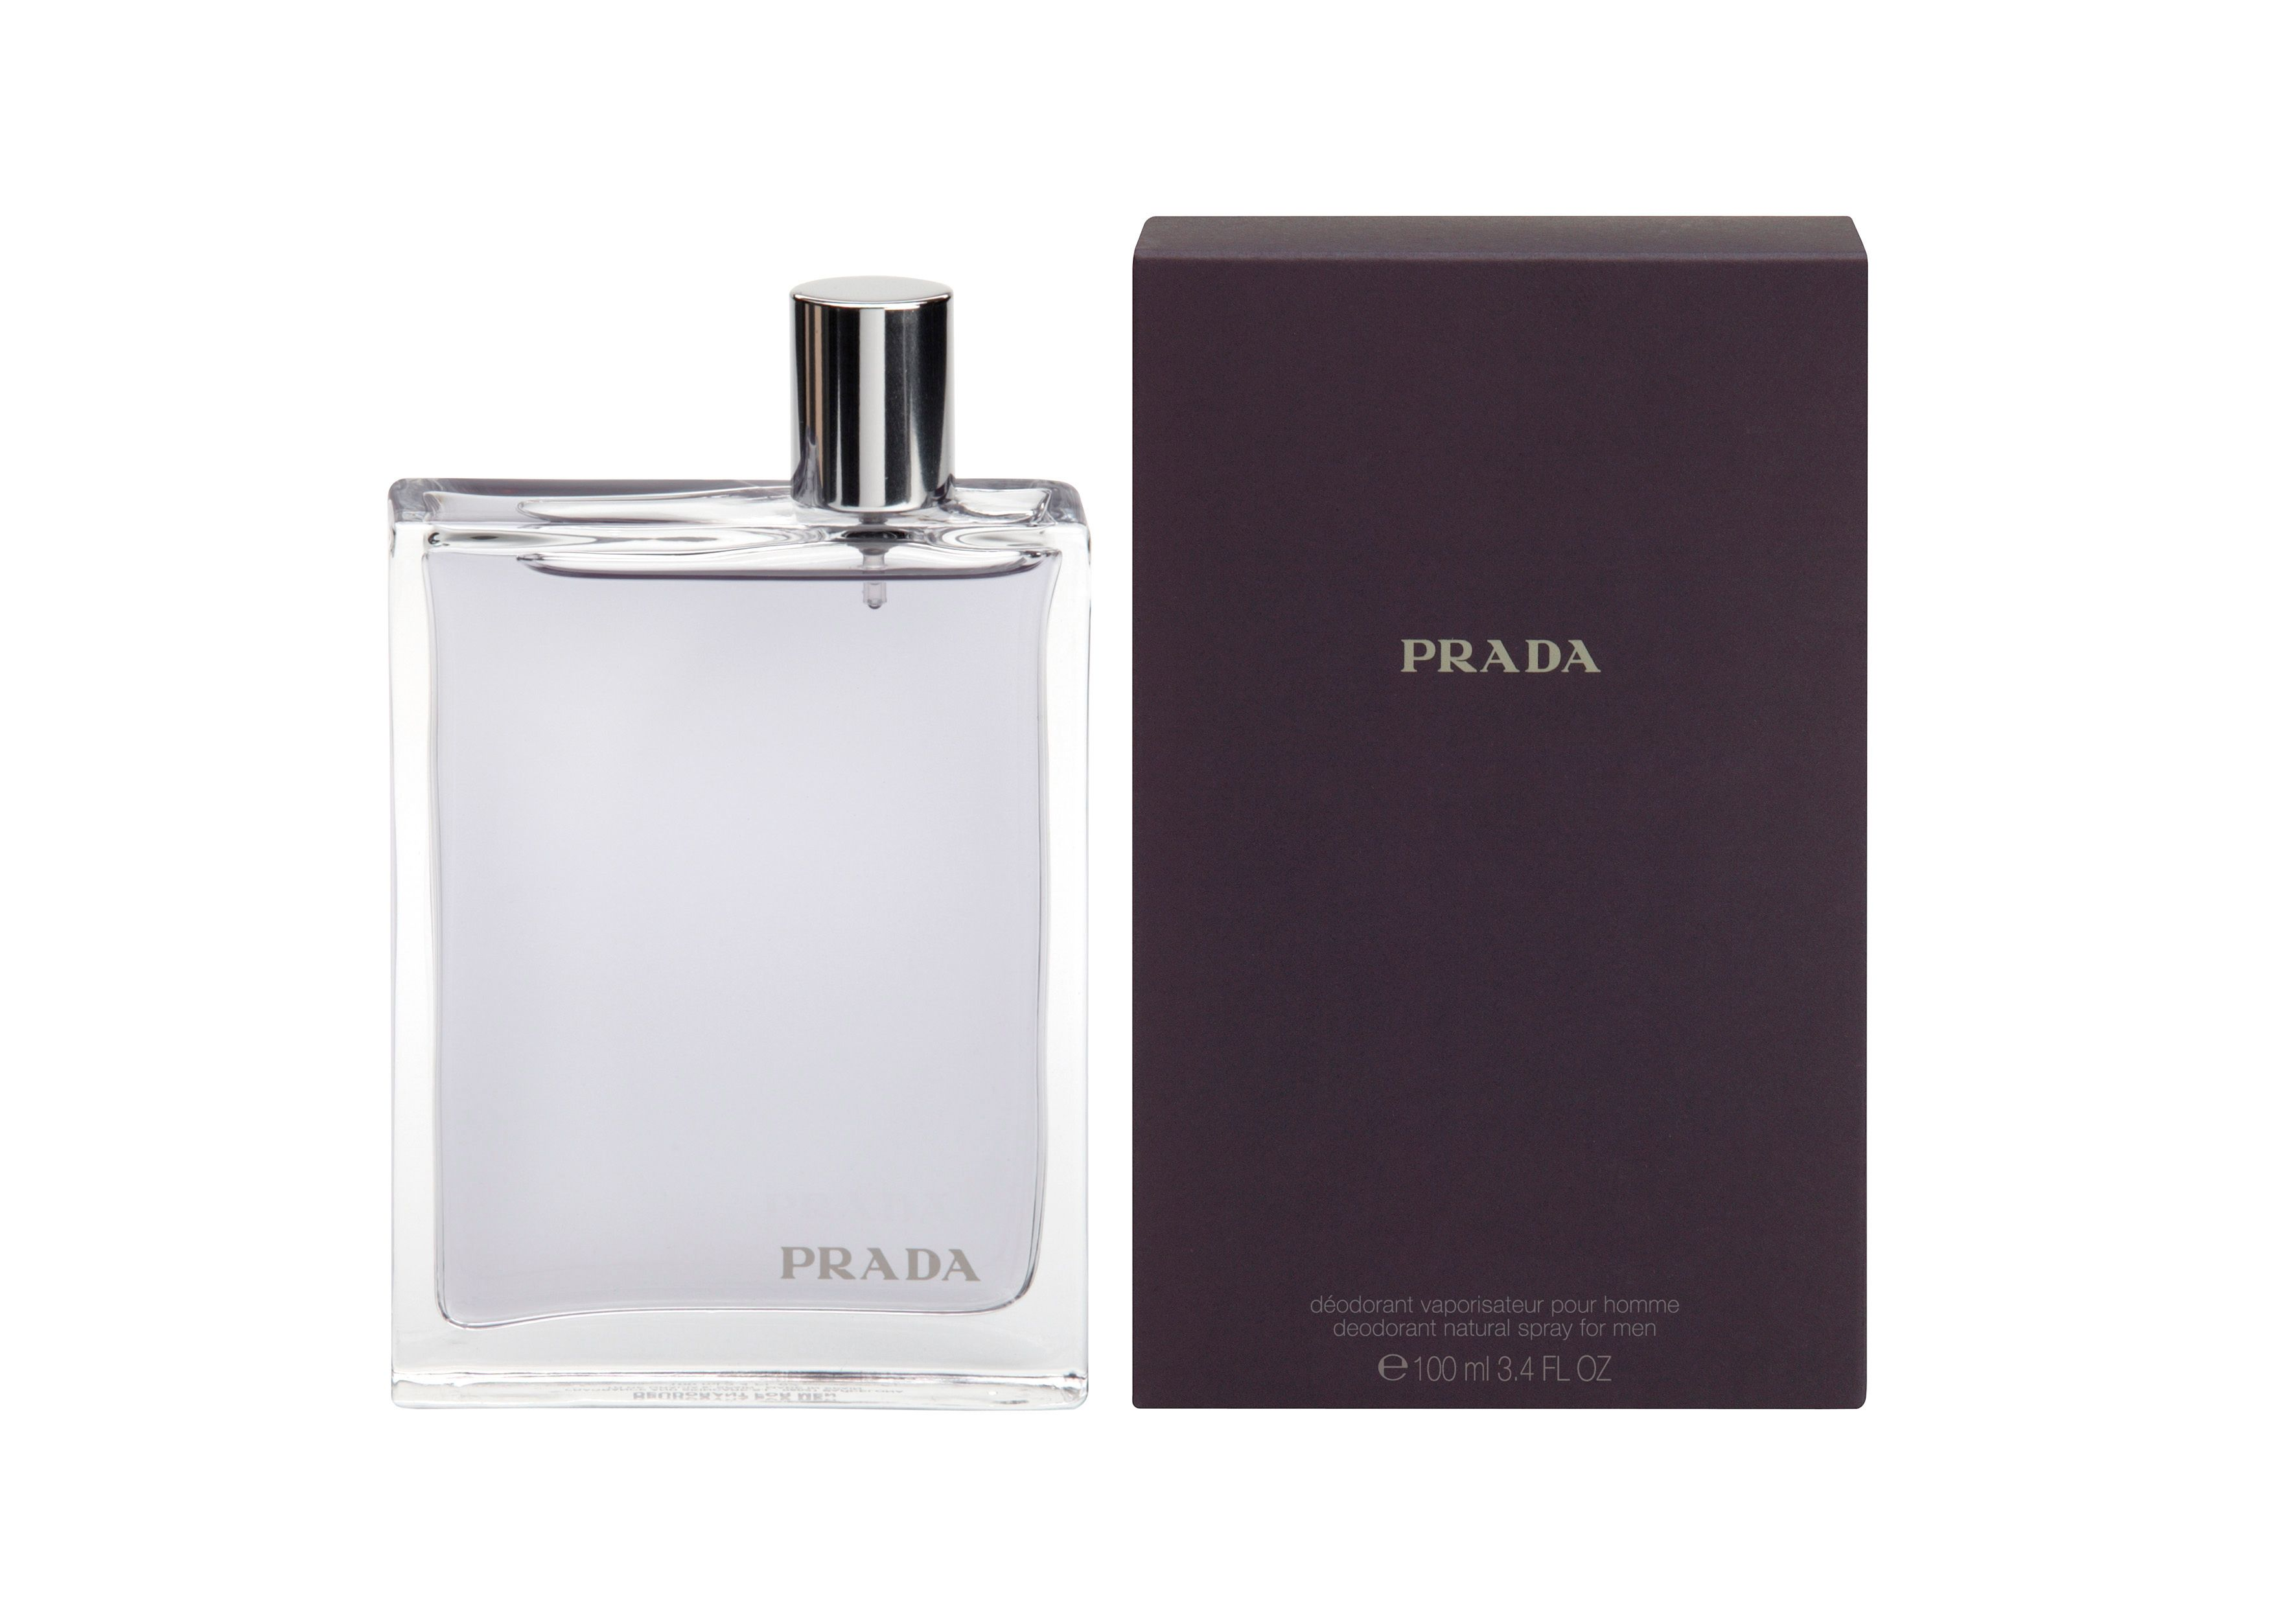 Prada 100ml mens deodorant spray